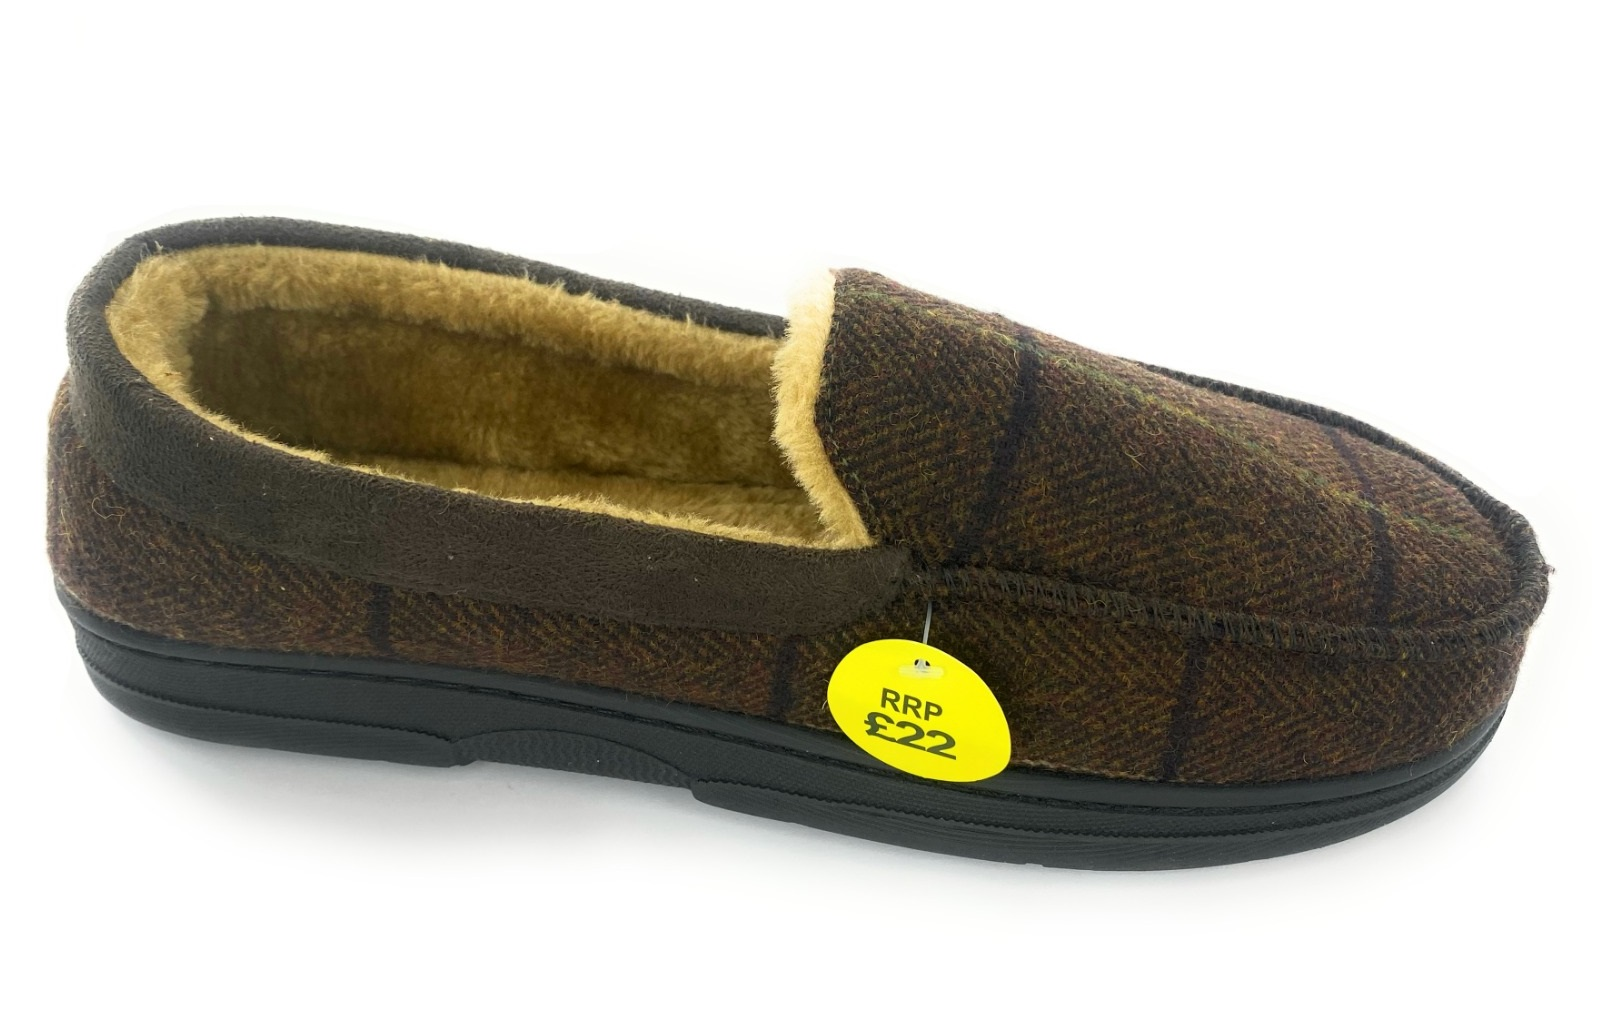 thumbnail 10 - MENS CHECK WARM MOCCASINS FAUX SUEDE SHEEPSKIN FUR LINED WINTER SLIPPERS SHOES